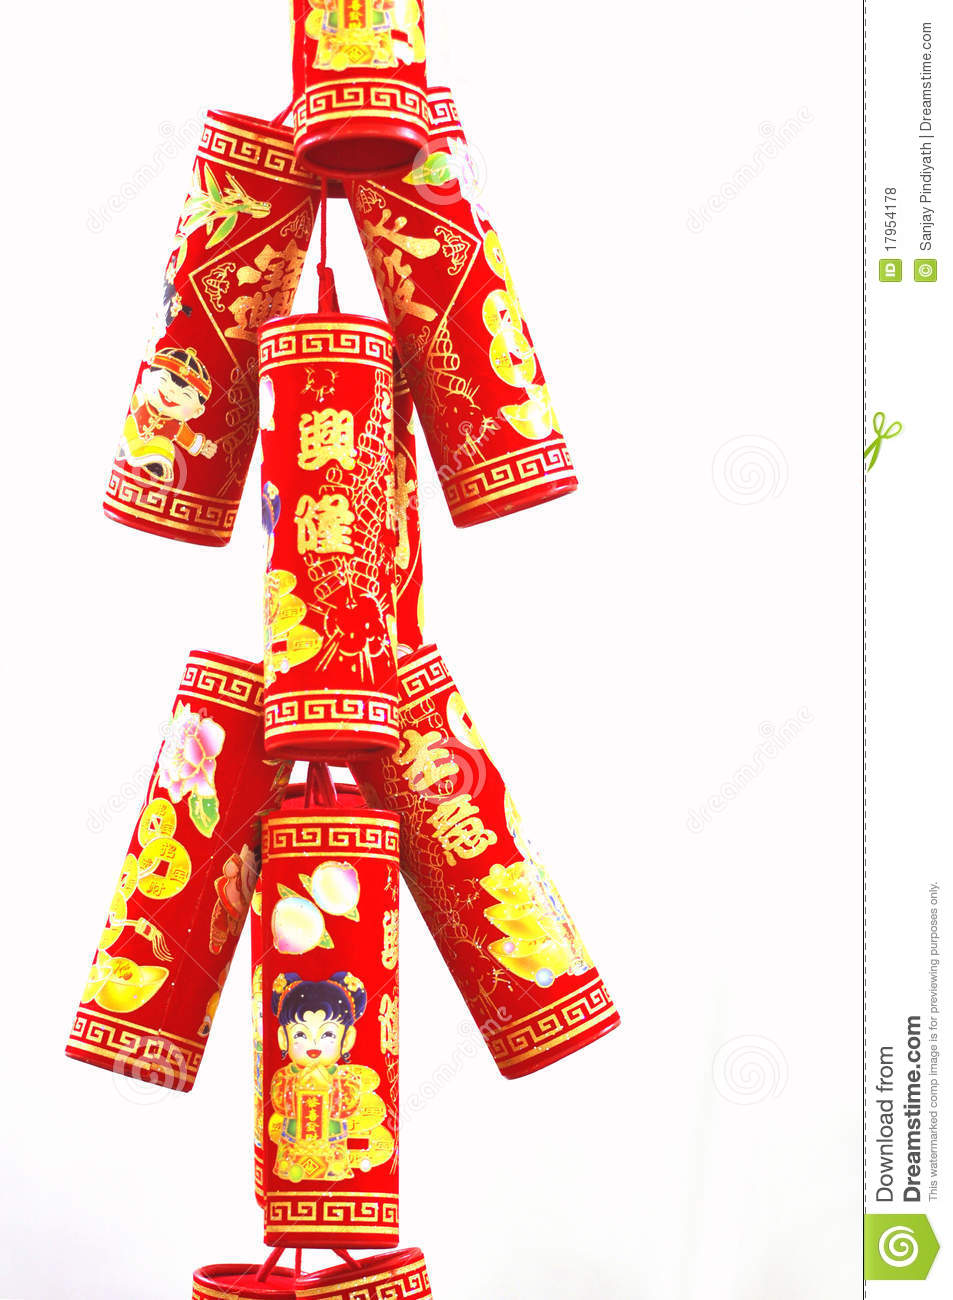 Fire crackers related to chinese lunar